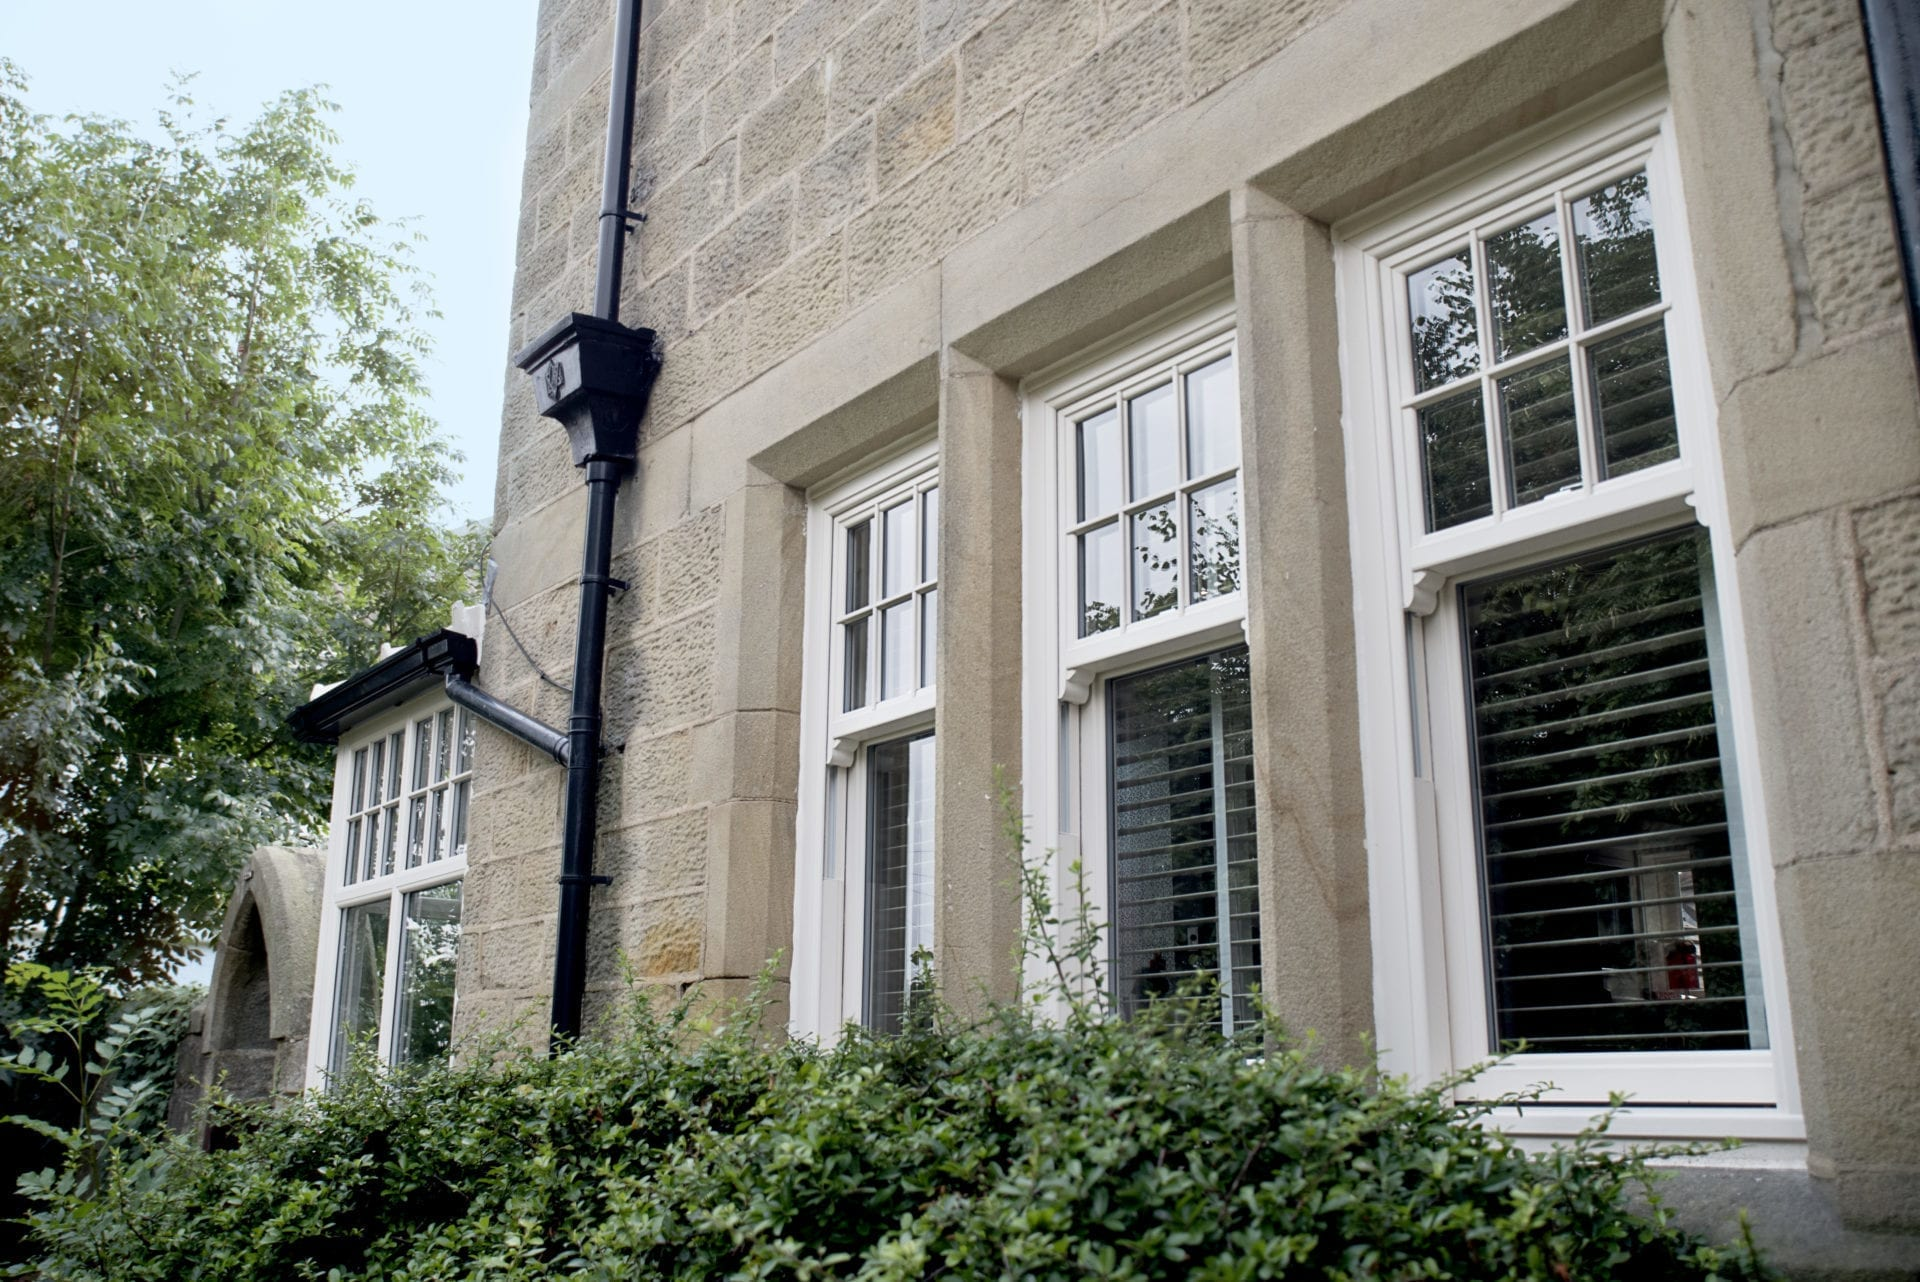 PVCu Sliding Sash Windows in Cream Woodgrain